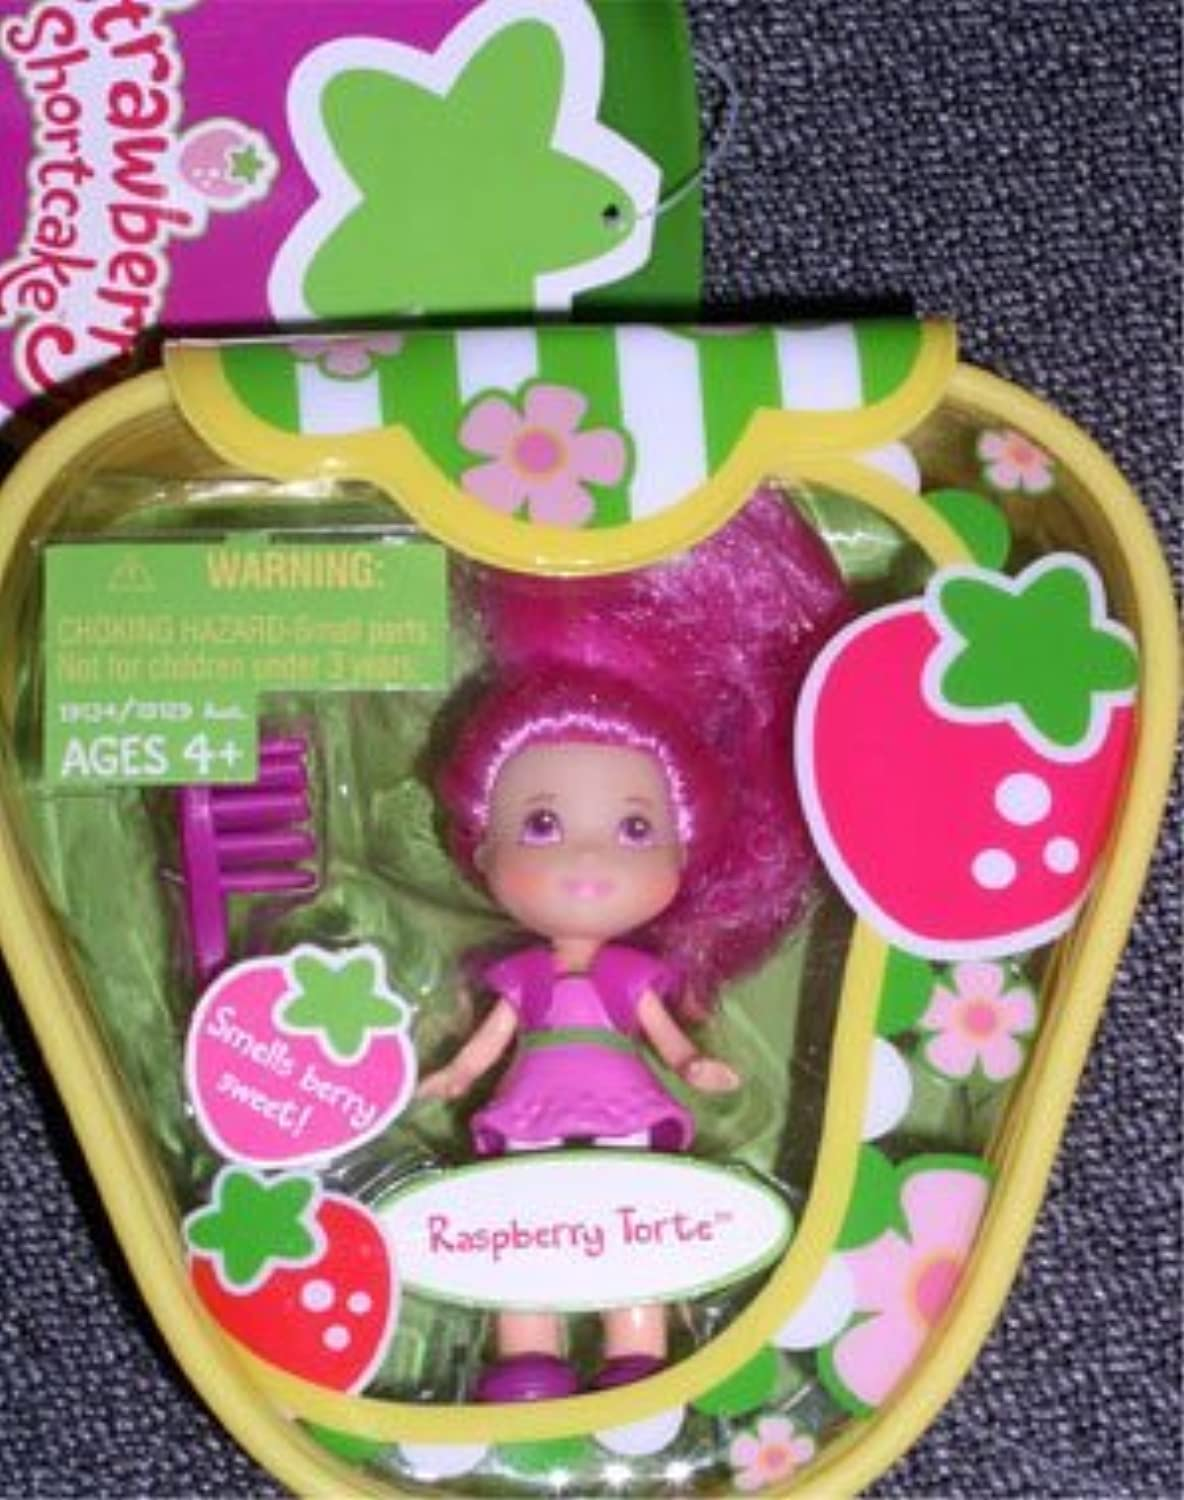 Strawberry Shortcake Hasbro Mini Doll in Purse Raspberry Torte by Strawberry Shortcakd [並行輸入品]